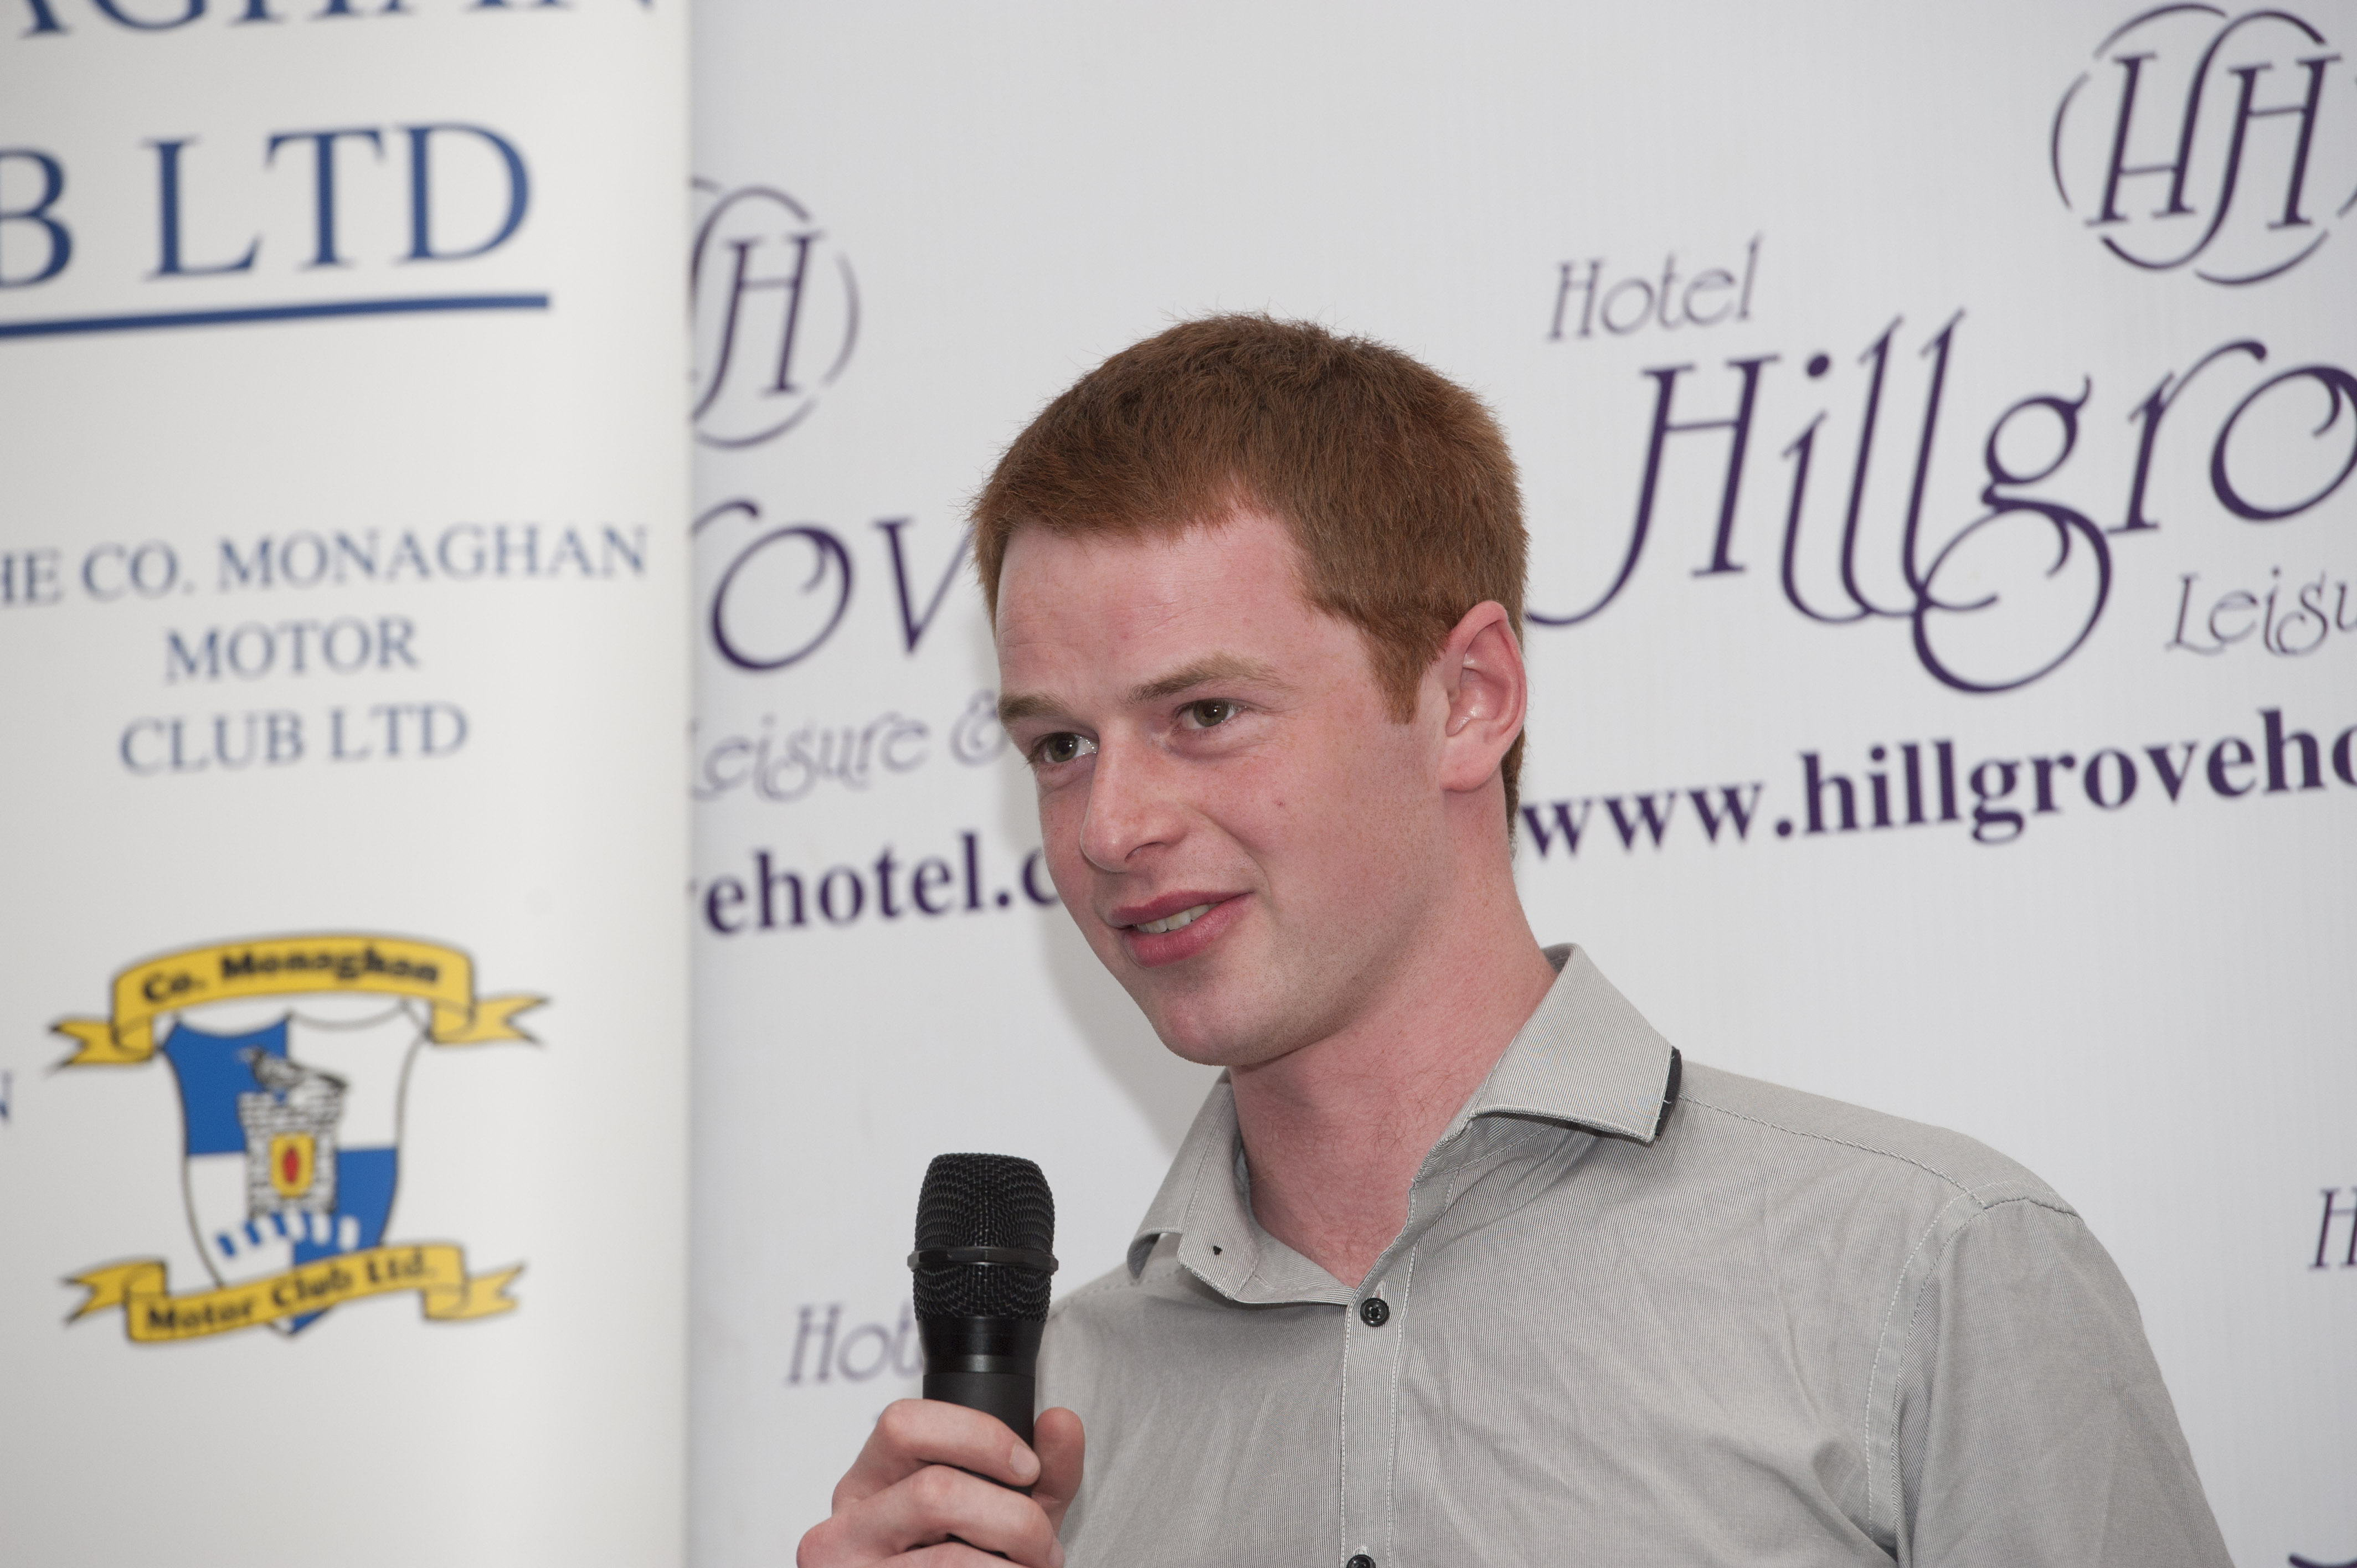 Winner of the The Hillgrove Hotel Monaghan Stages Rally 2016, Josh Moffett, speaking at the presentation function in The Hillgrove Hotel. ©Rory Geary/The Northern Standard